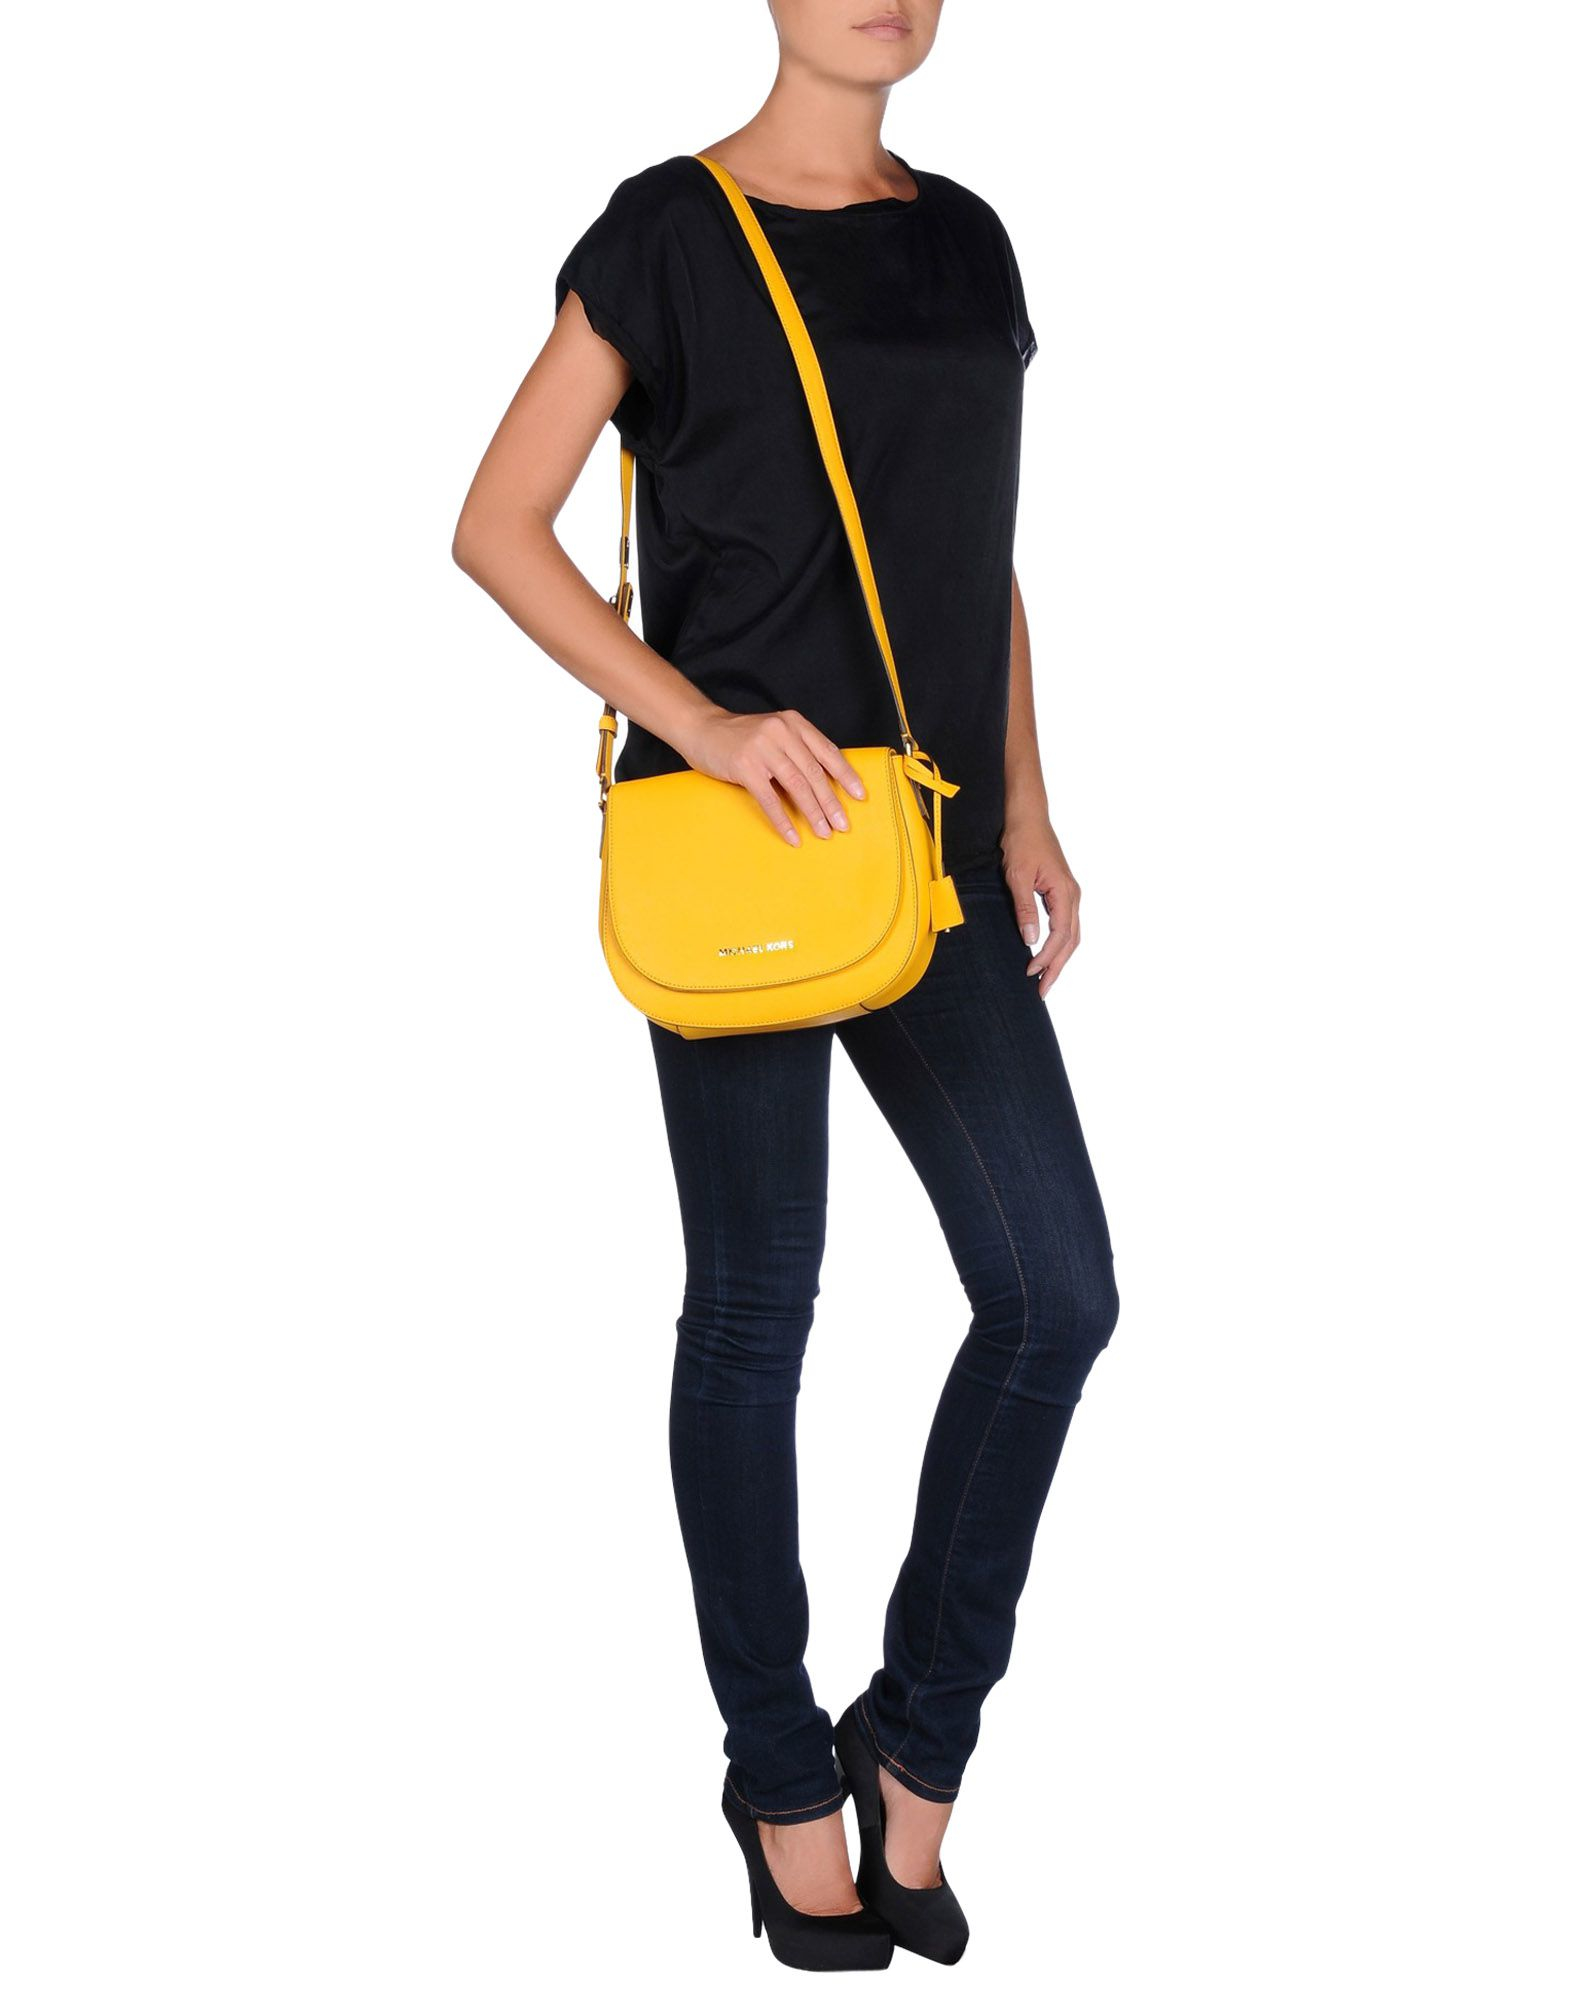 MICHAEL Michael Kors Leather Cross-body Bag in Yellow